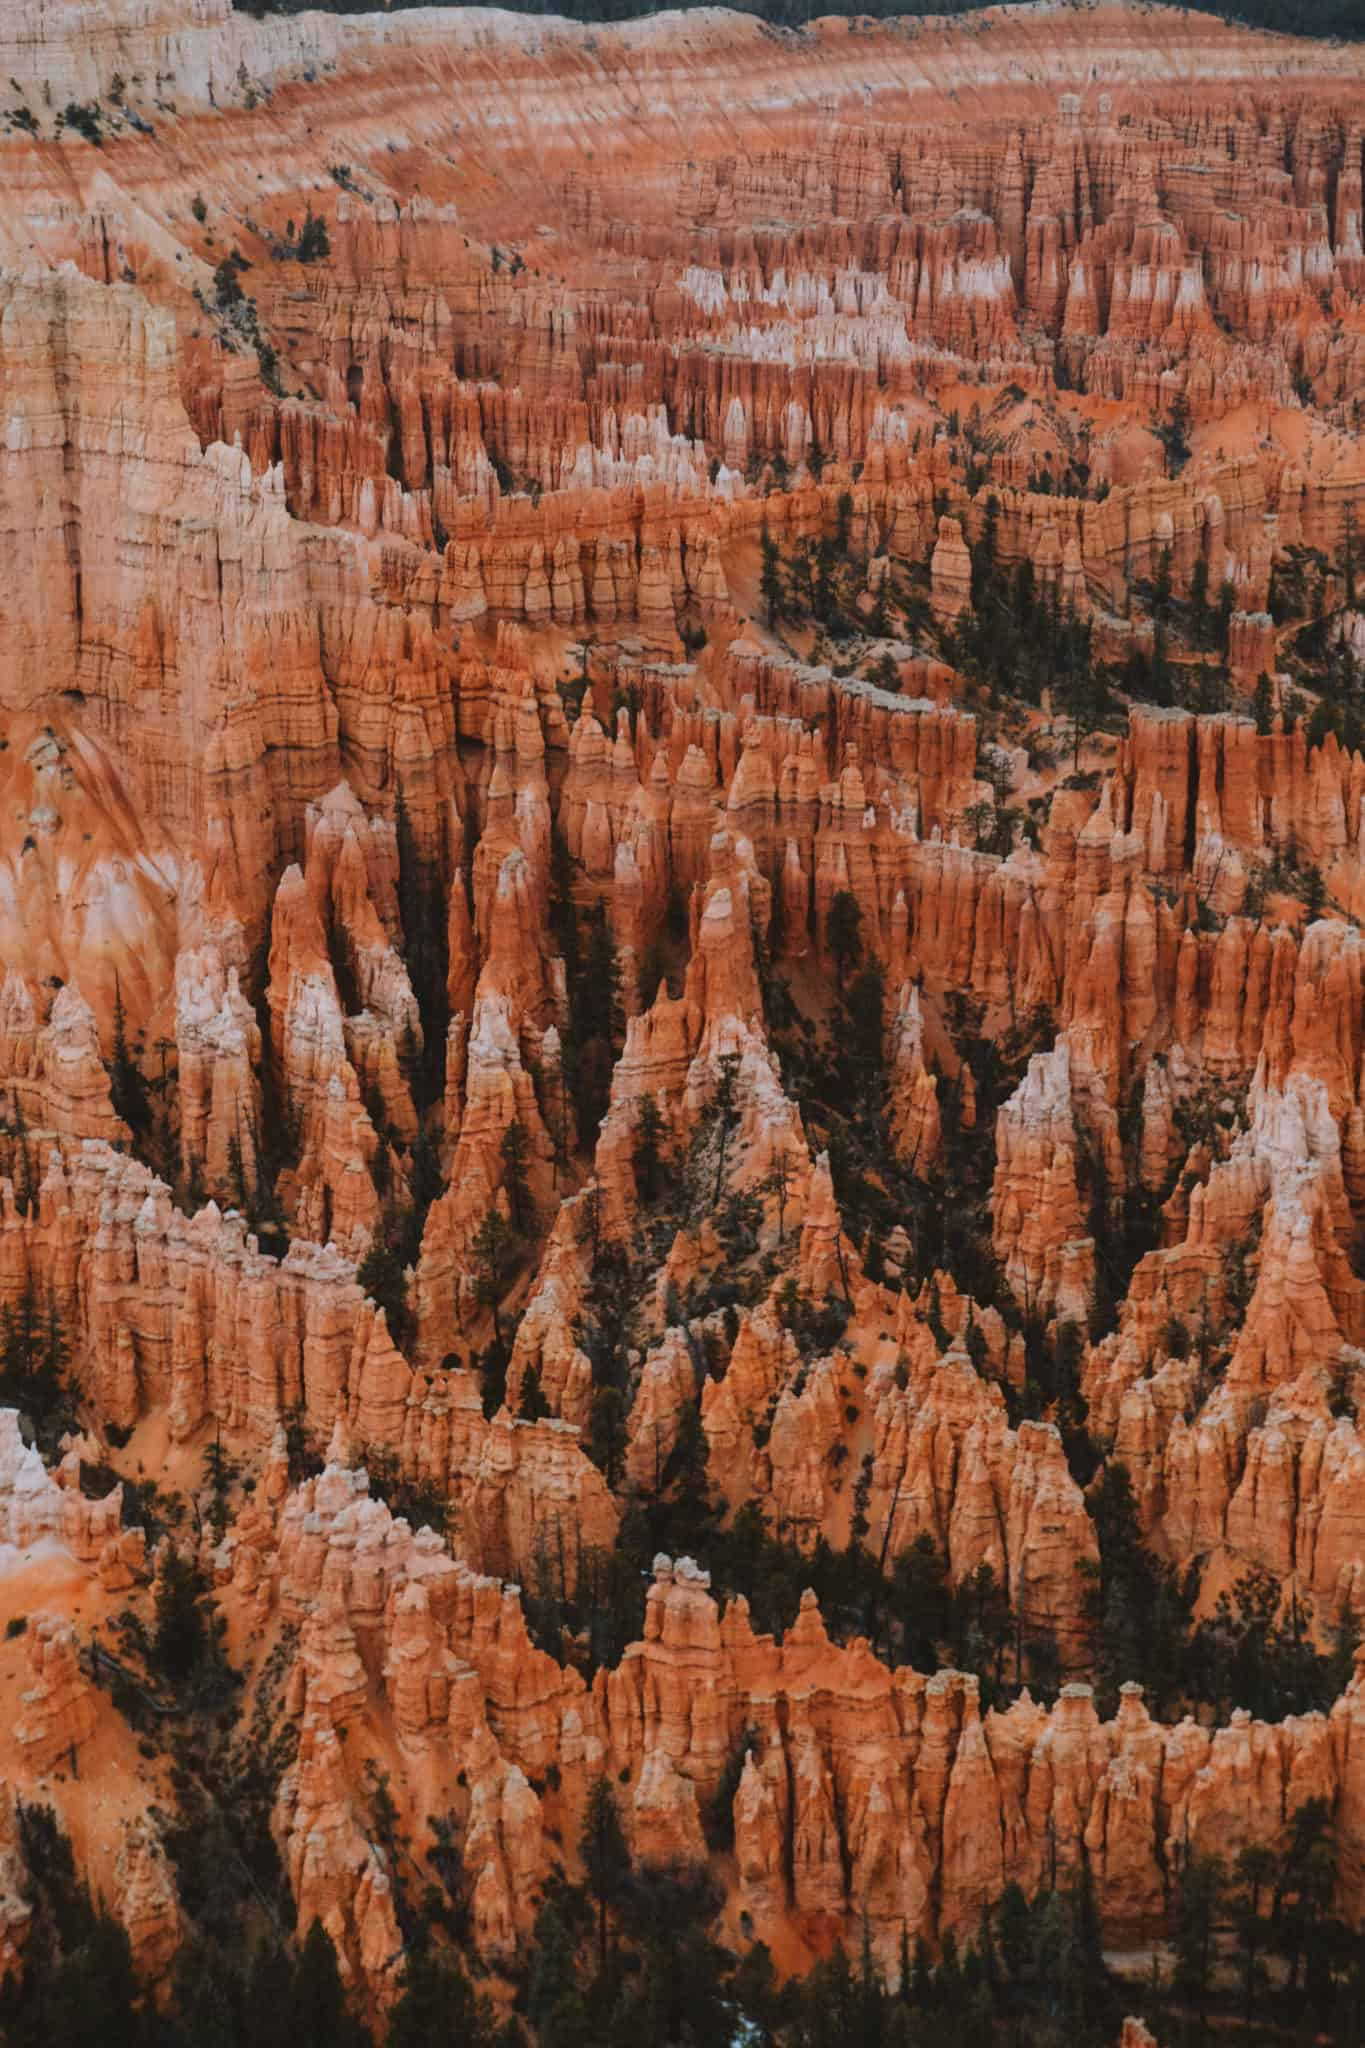 Utah National Parks - Bryce Canyon